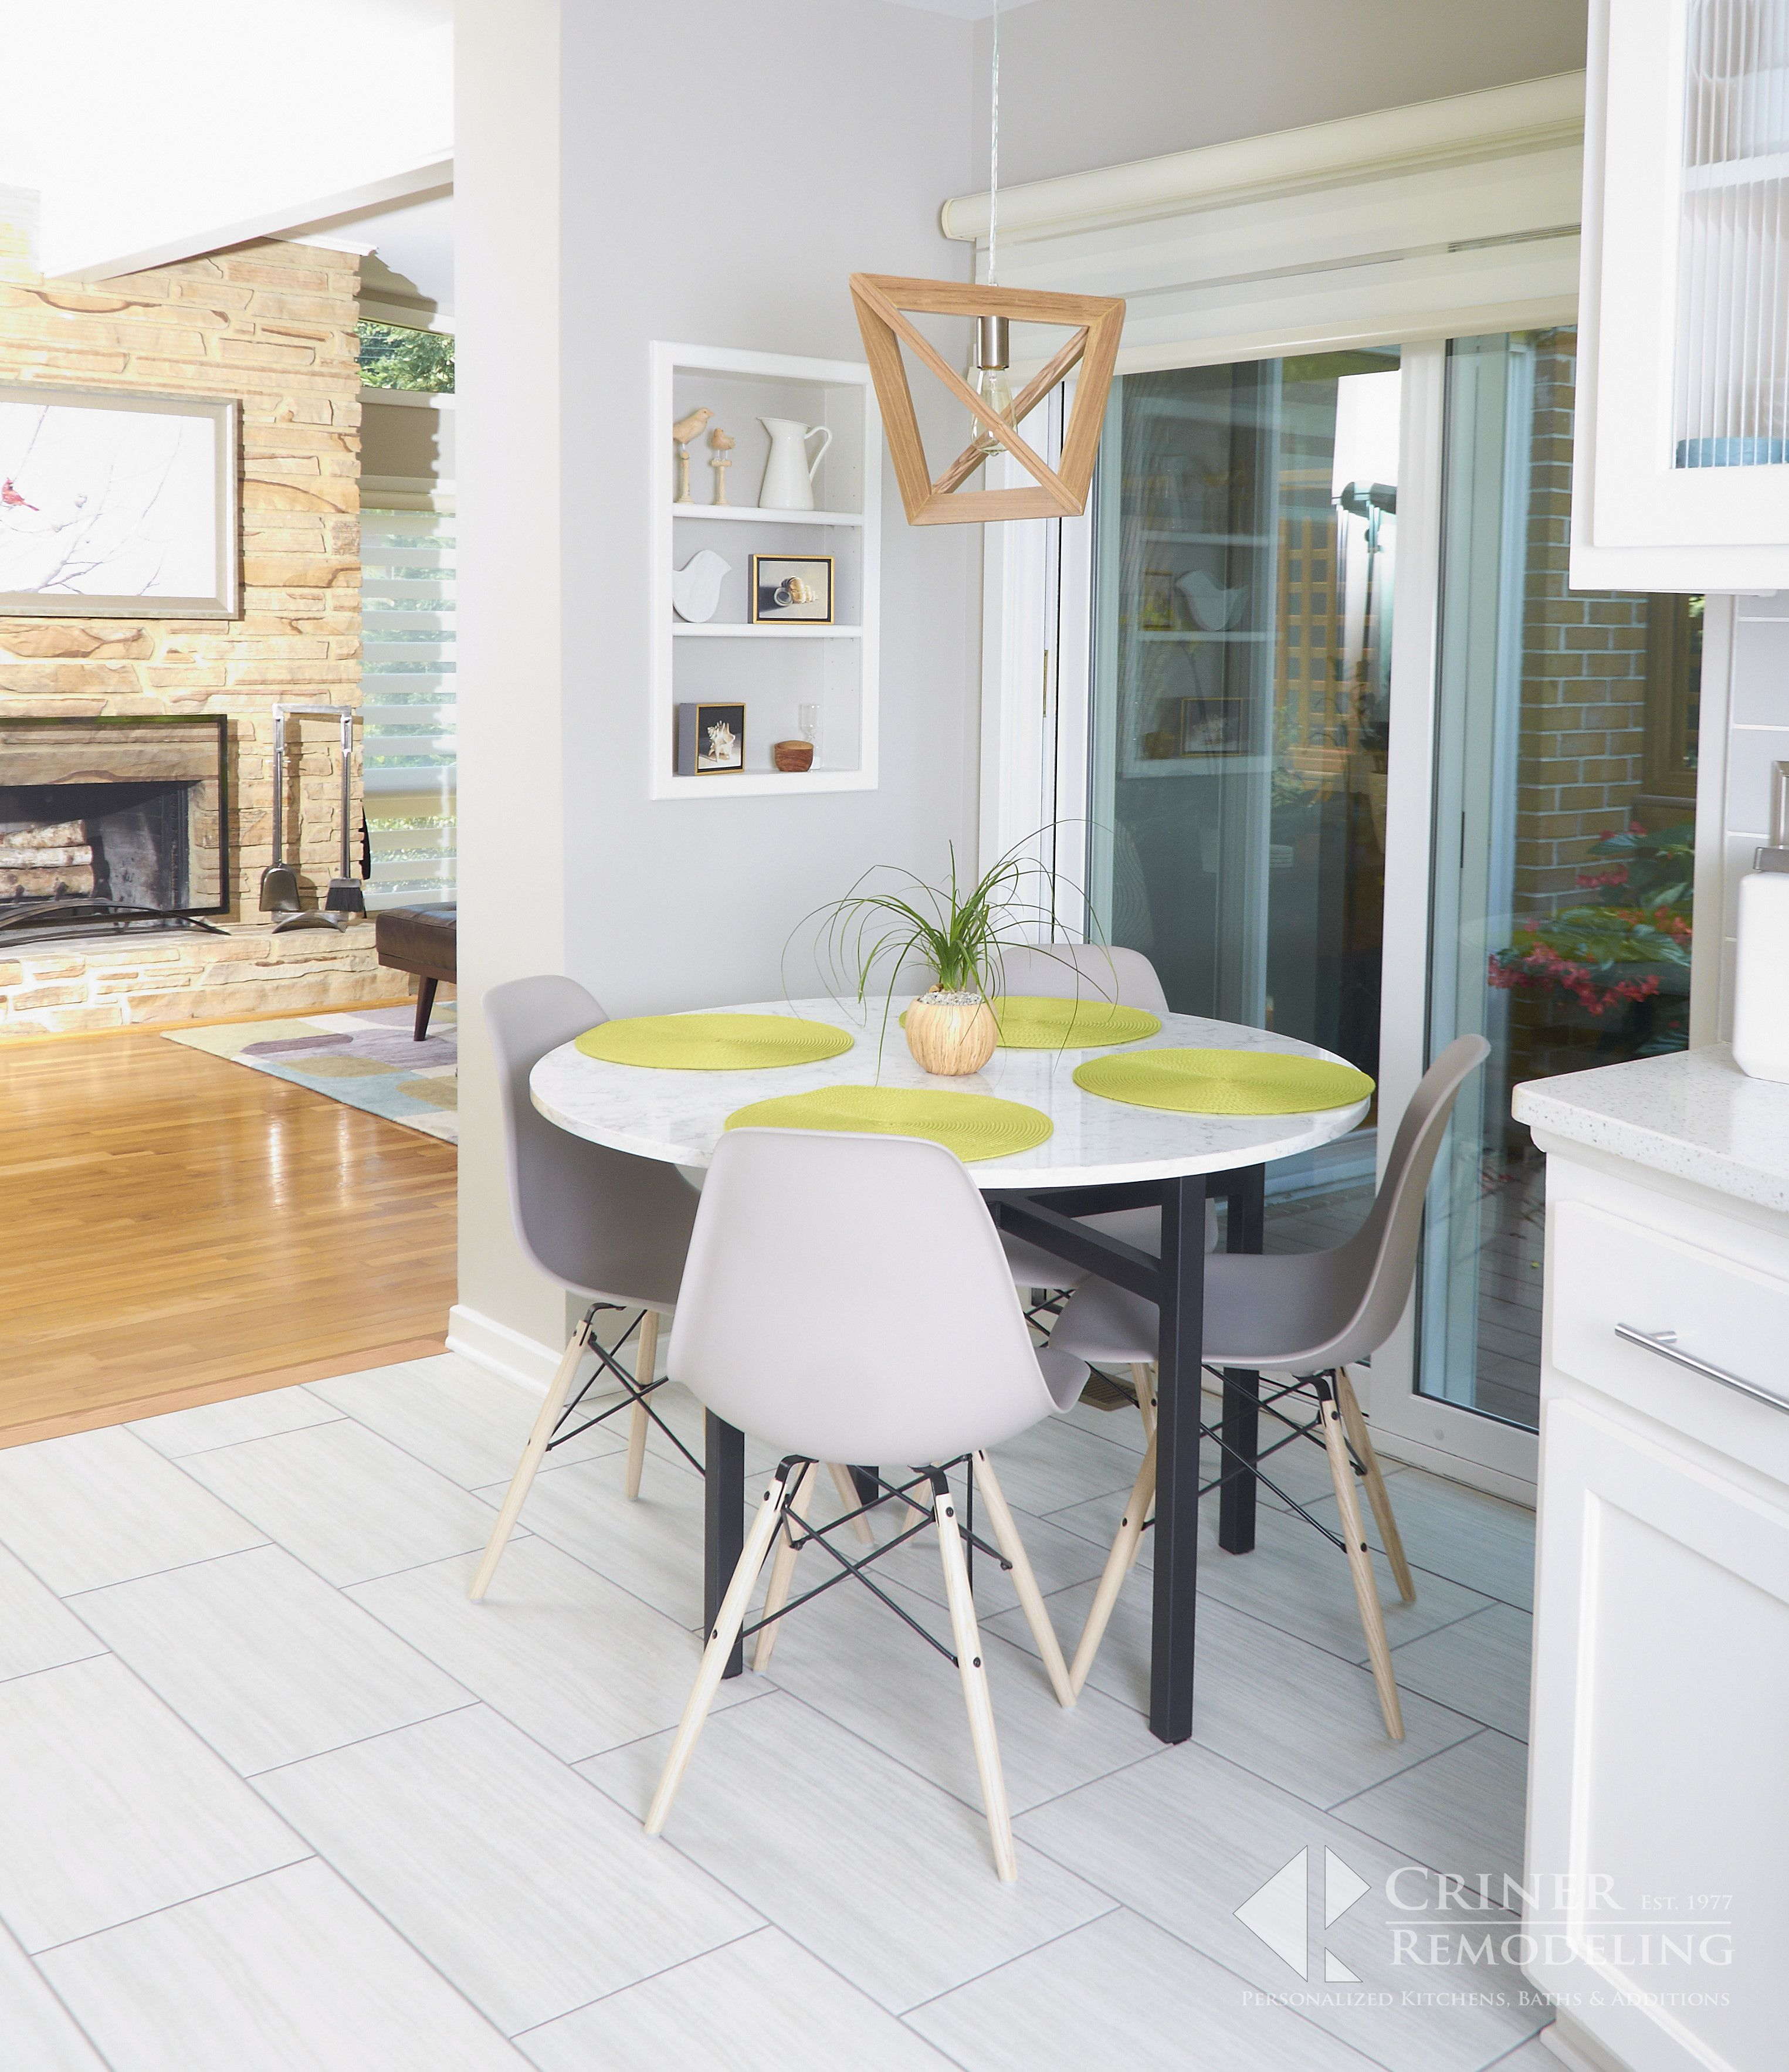 A Bump Out And Recessed Niche Increase Floor Space And Add Storage Solutions To A Breakfast Area T Kitchen Remodeling Projects Home Remodeling Custom Kitchens